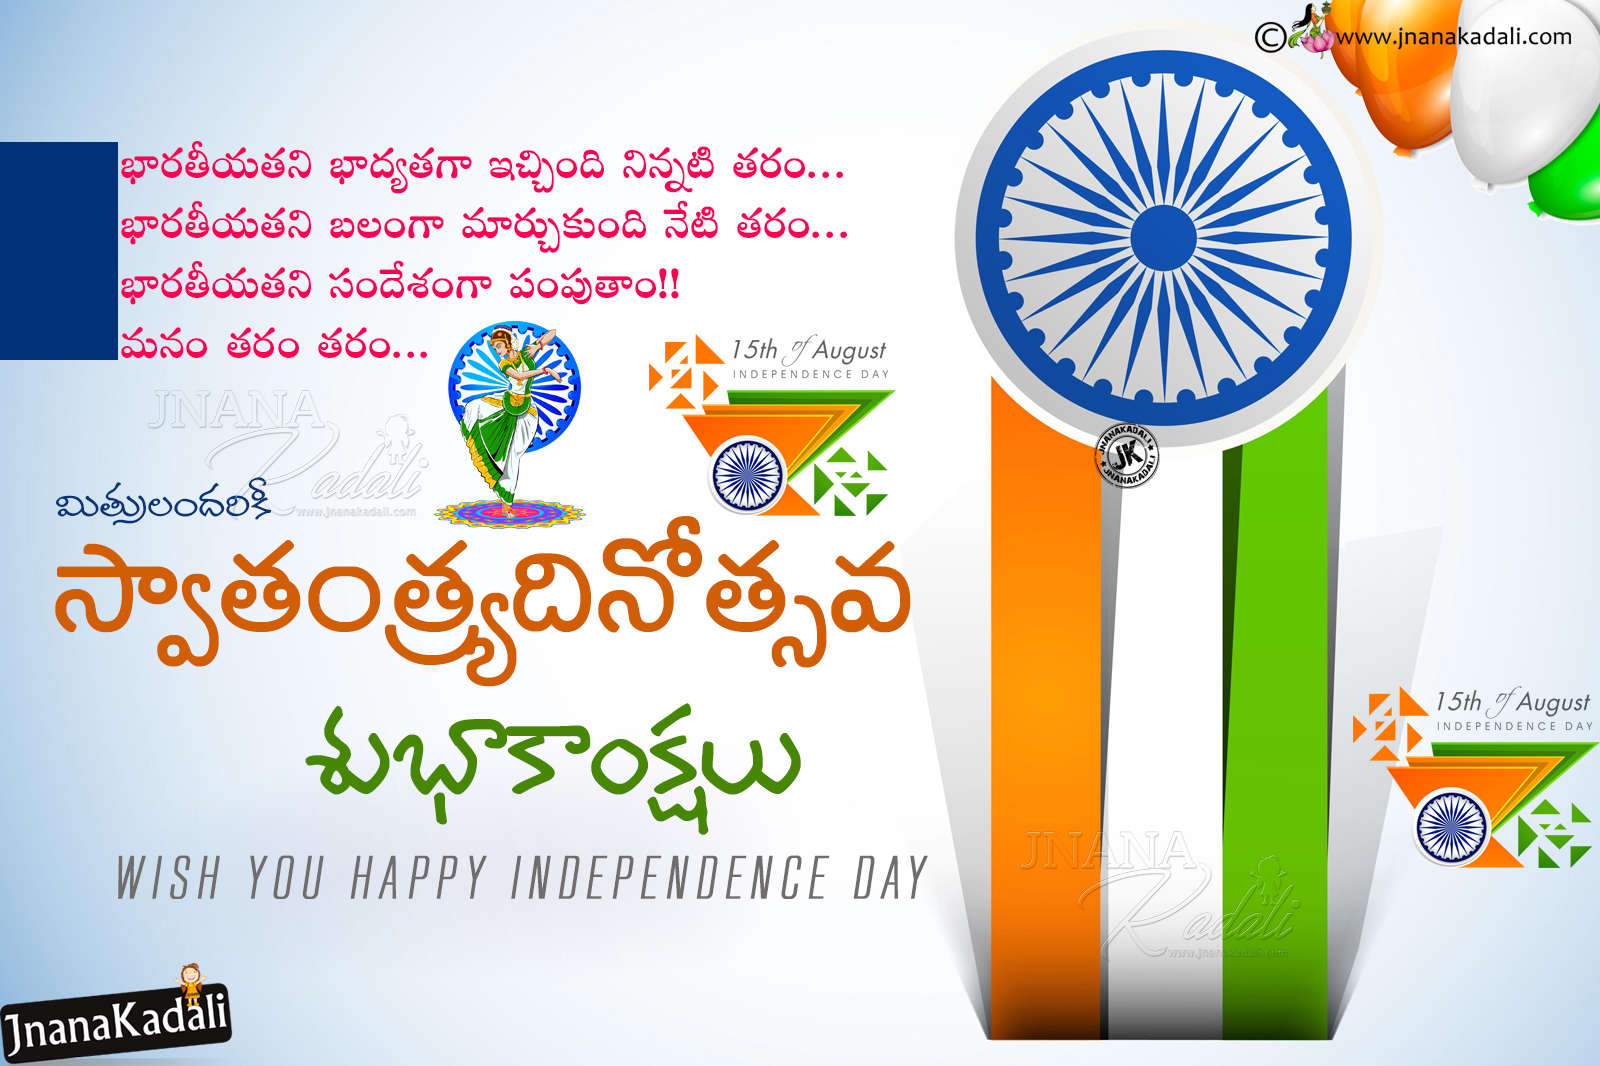 Patriotic Independence Day Greetings With Heart Touching Messages In